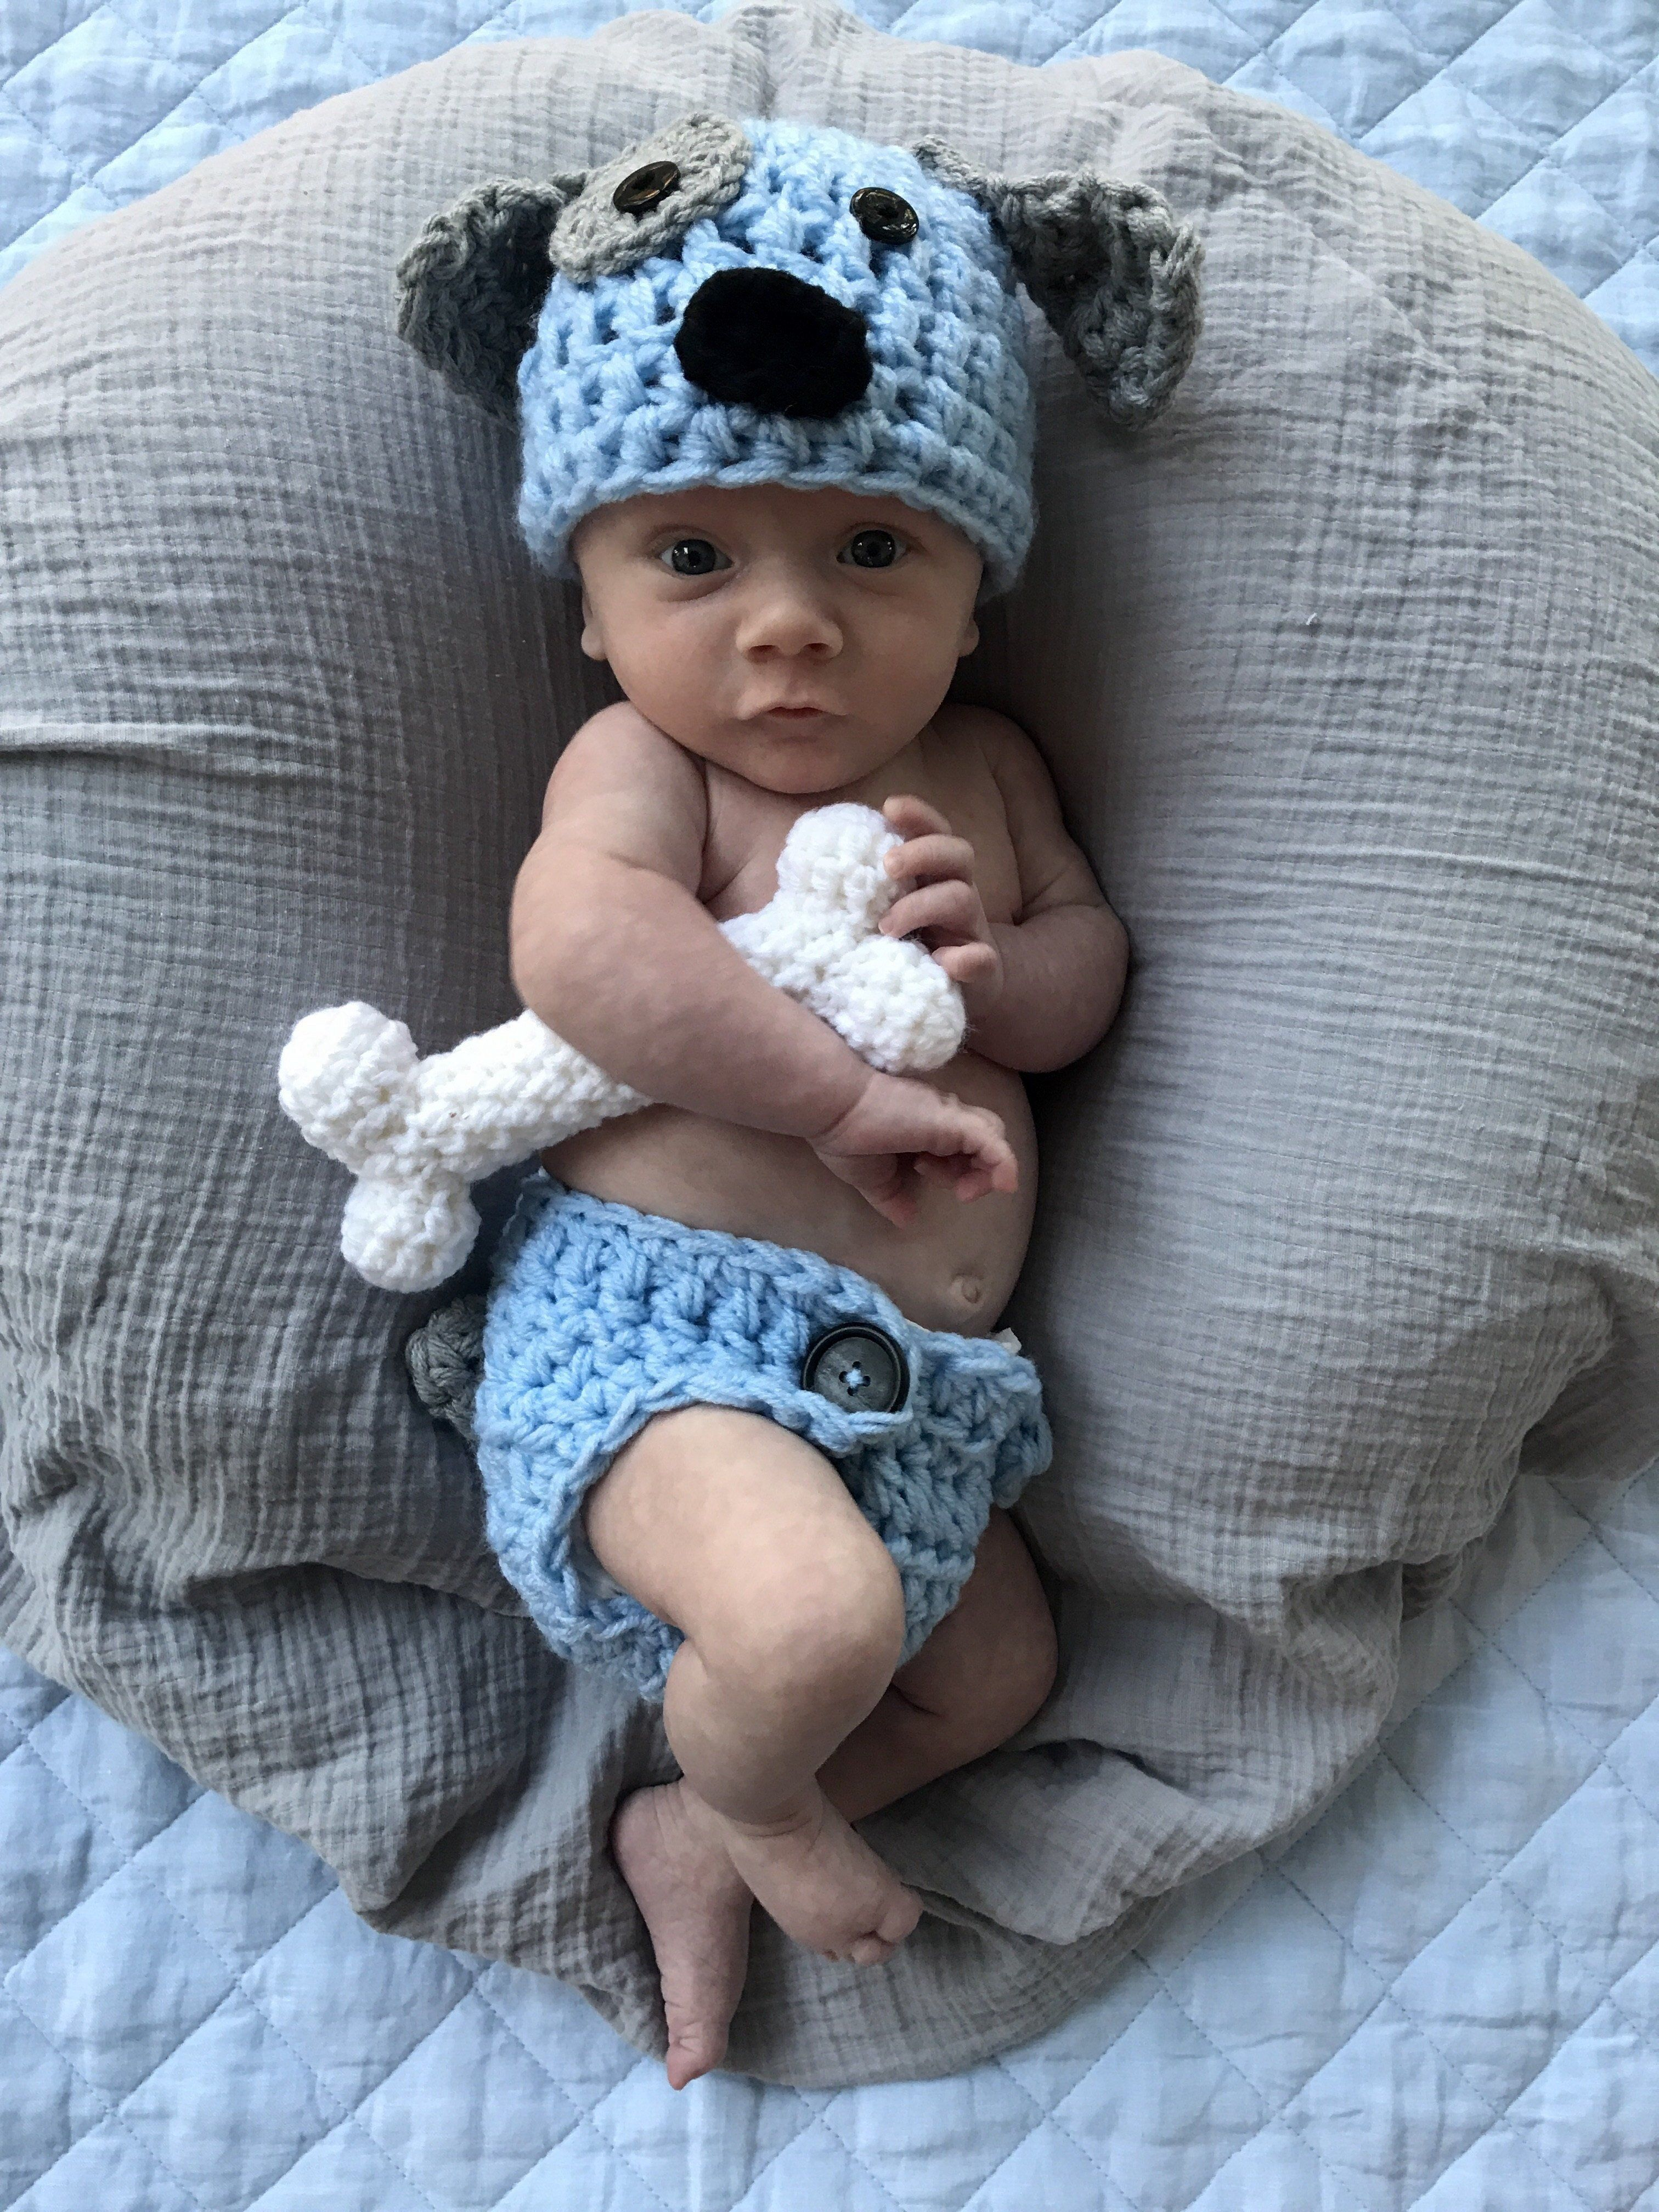 e1cea6657 Crochet Baby Puppy Outfit Light Blue Newborn Photo Prop Outfit ...